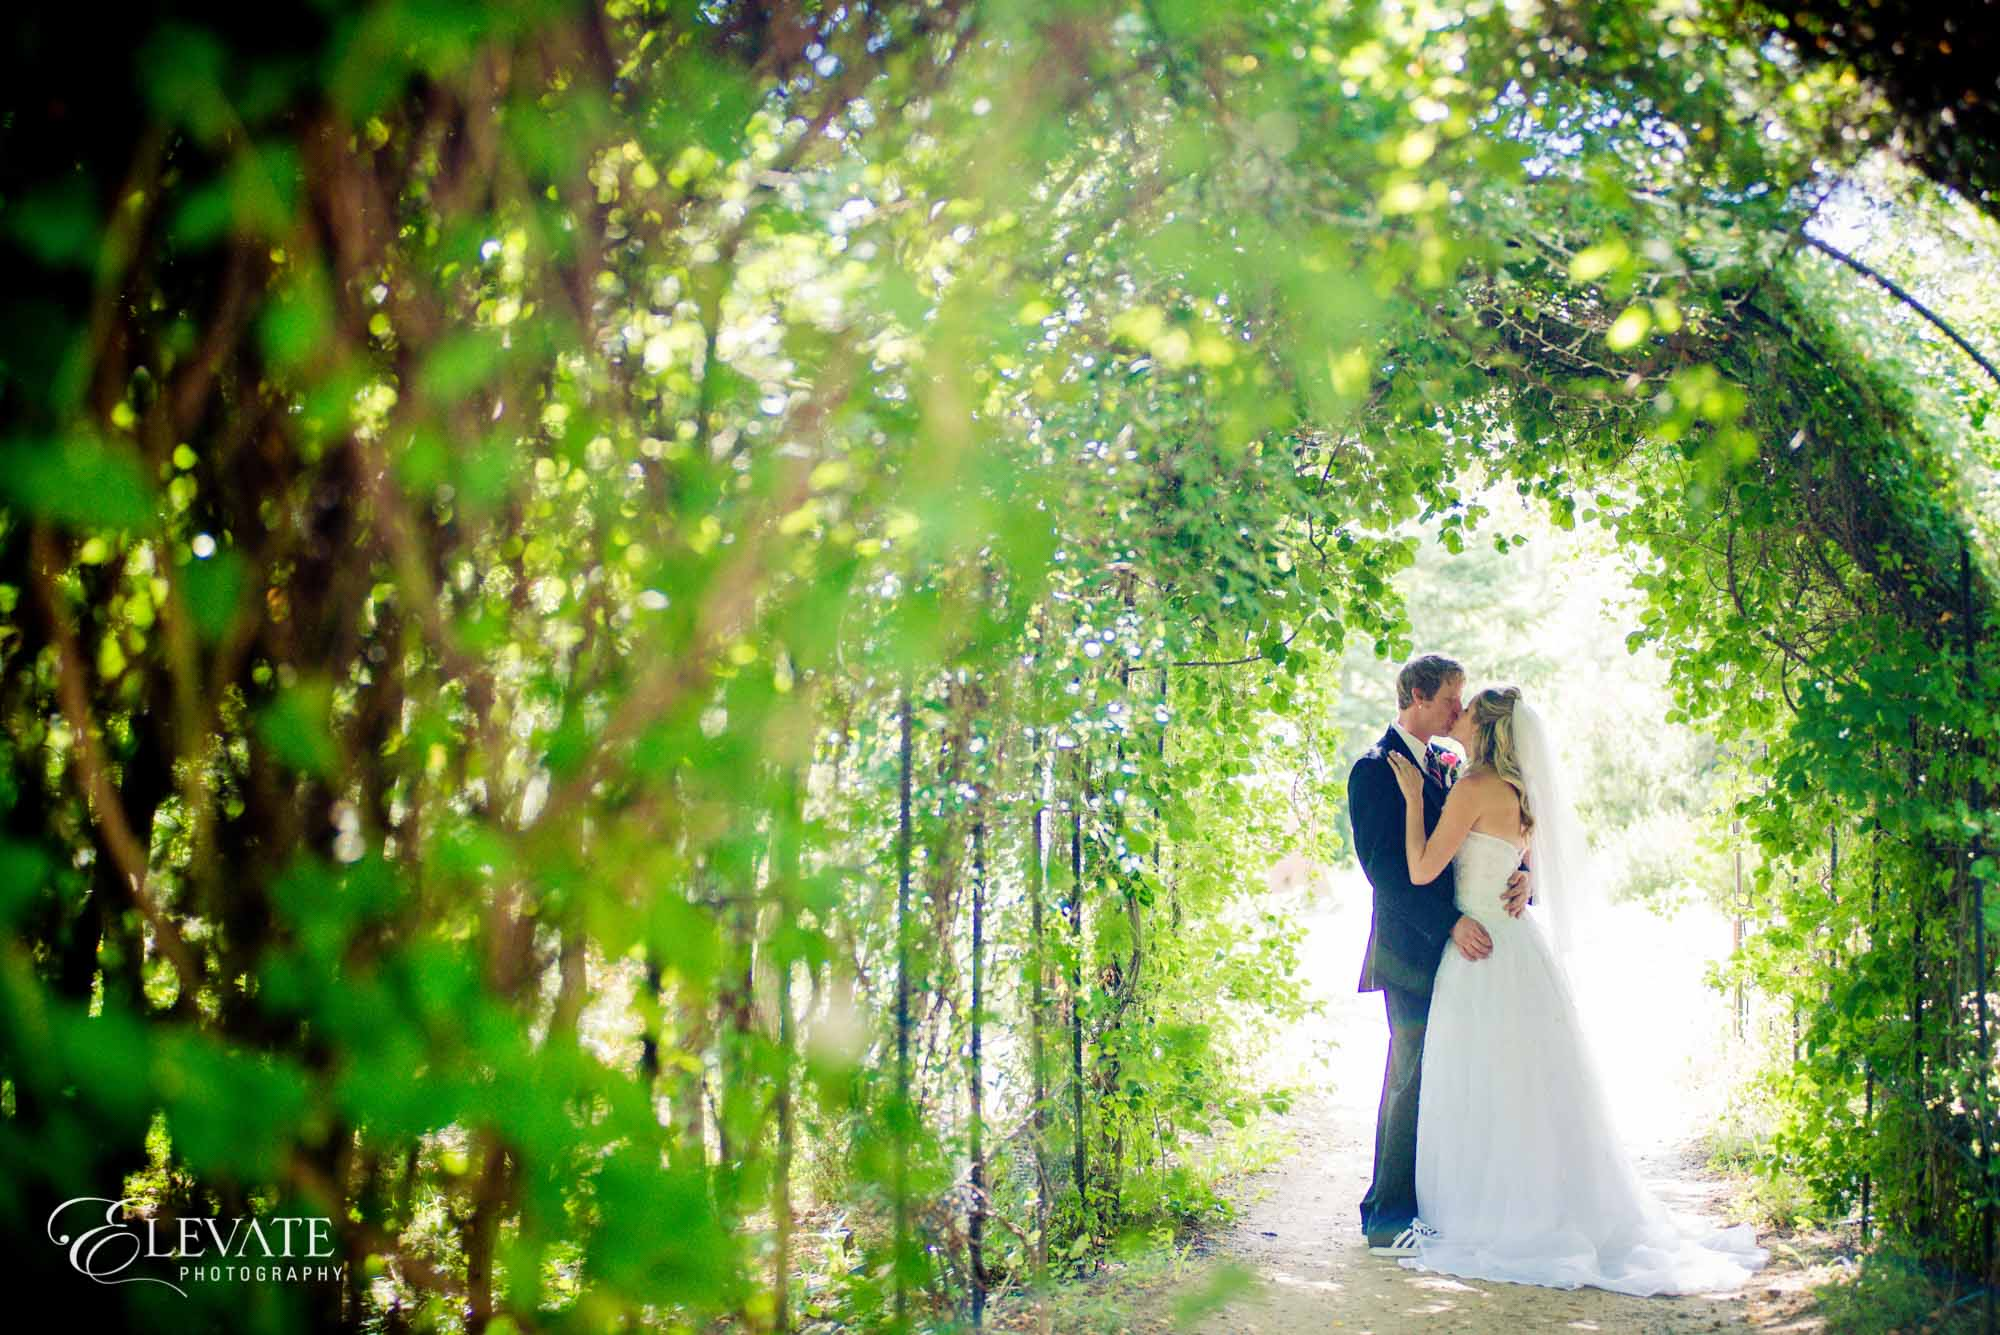 Colorado springs weddings elevate photography for Green spring gardens wedding